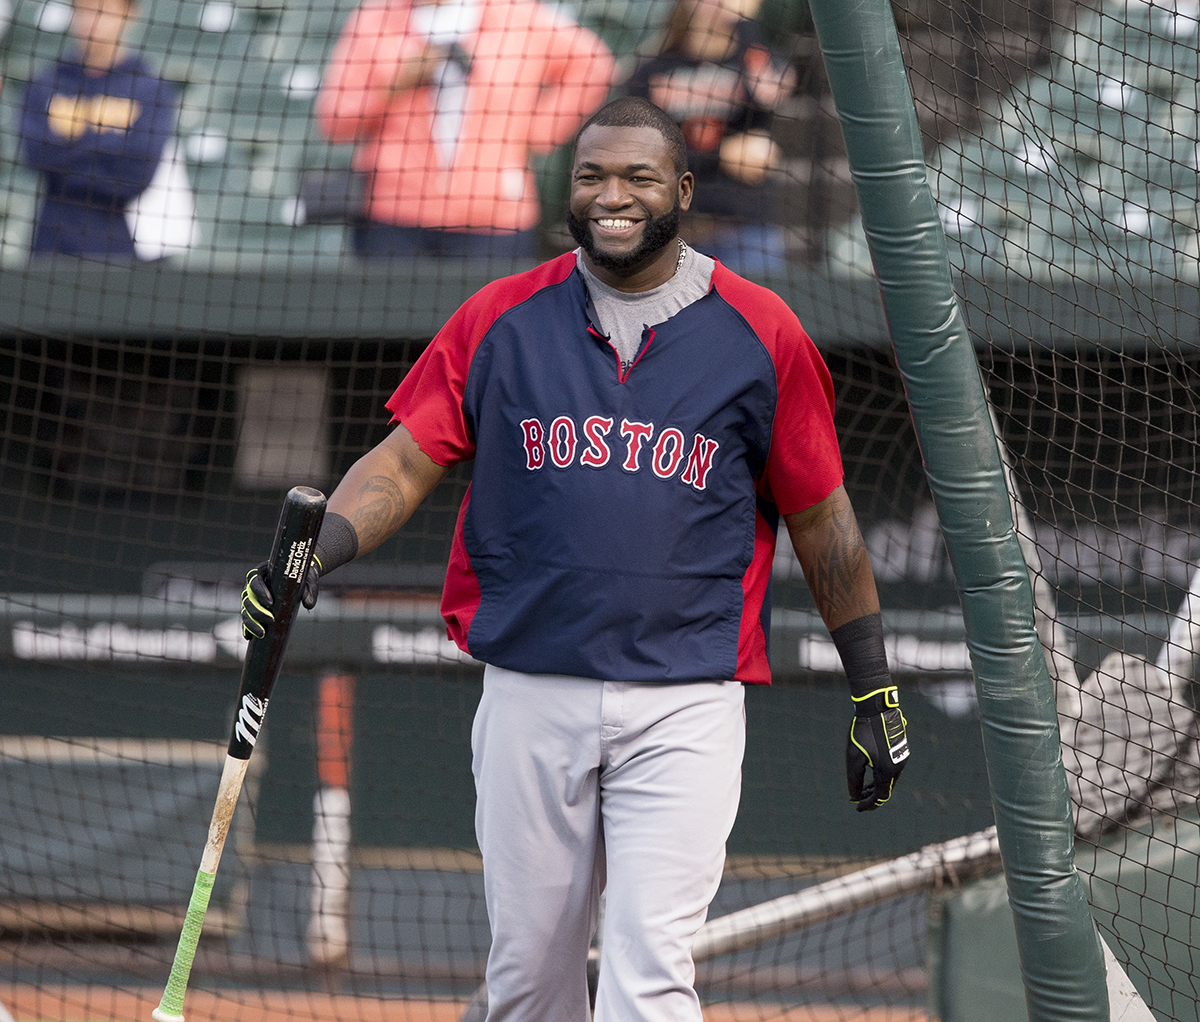 David Ortiz by Keith Allison on Flickr/Creative Commons